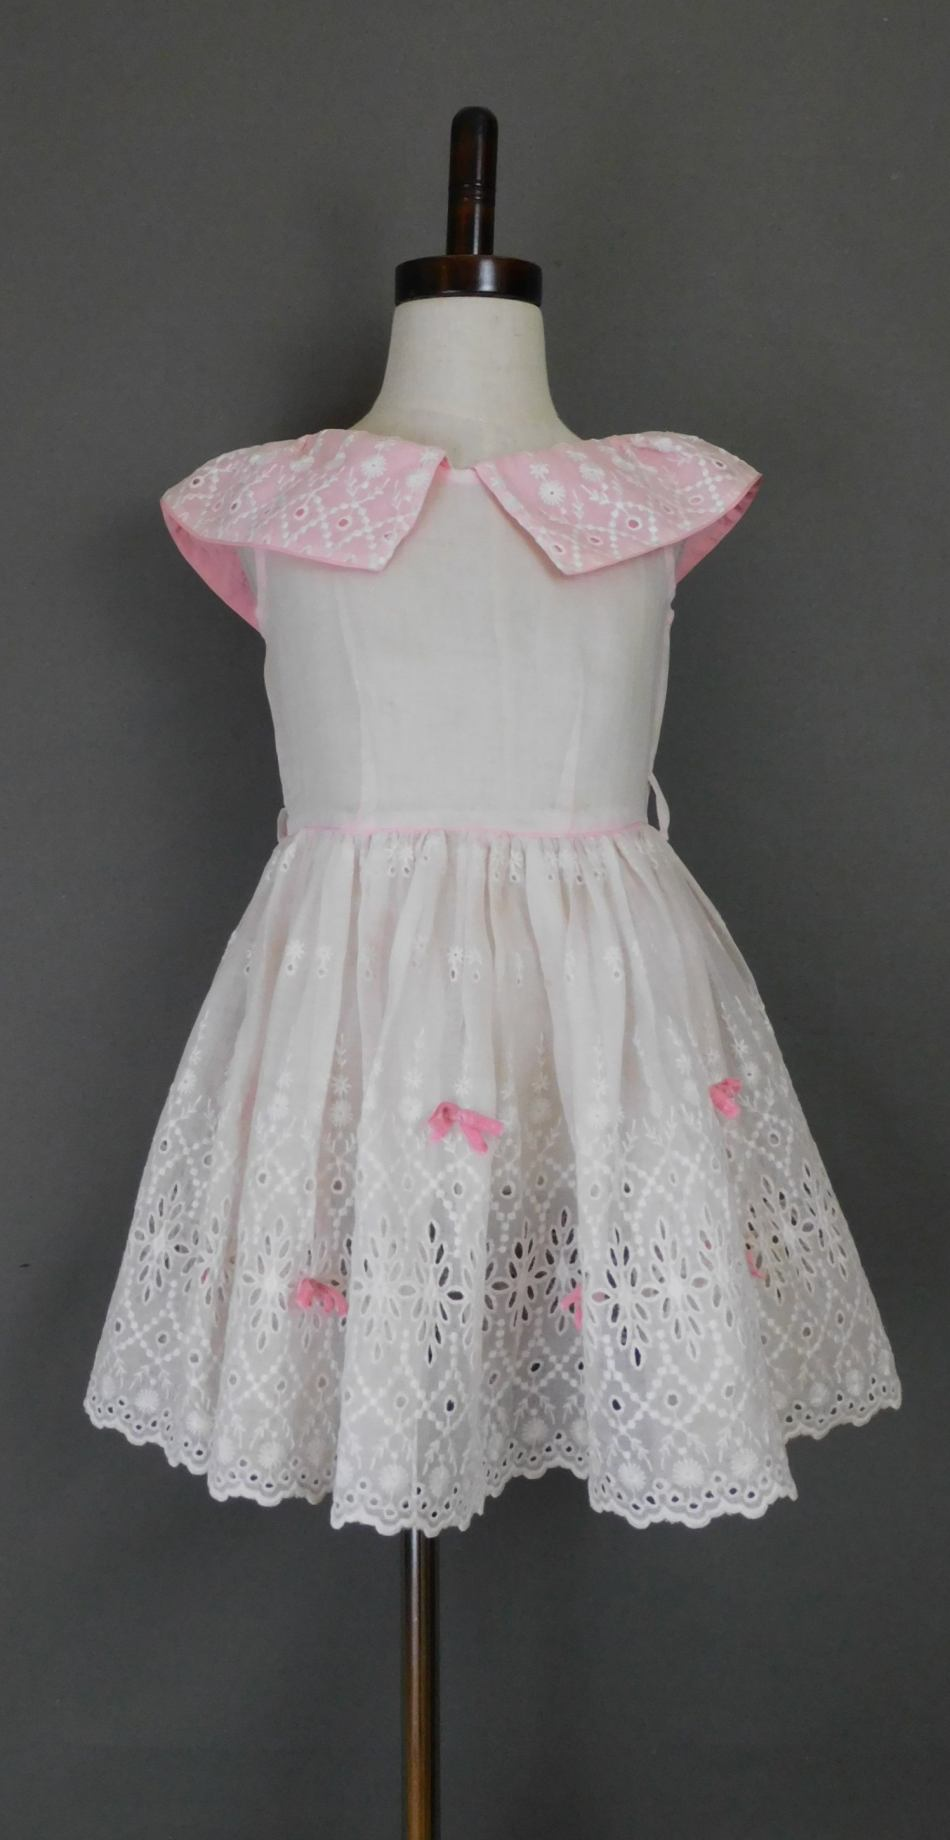 Vintage Little Girl 1940s Dress Sheer Pink Organdy, 24 inch chest, White Embroidery & Pink Bows